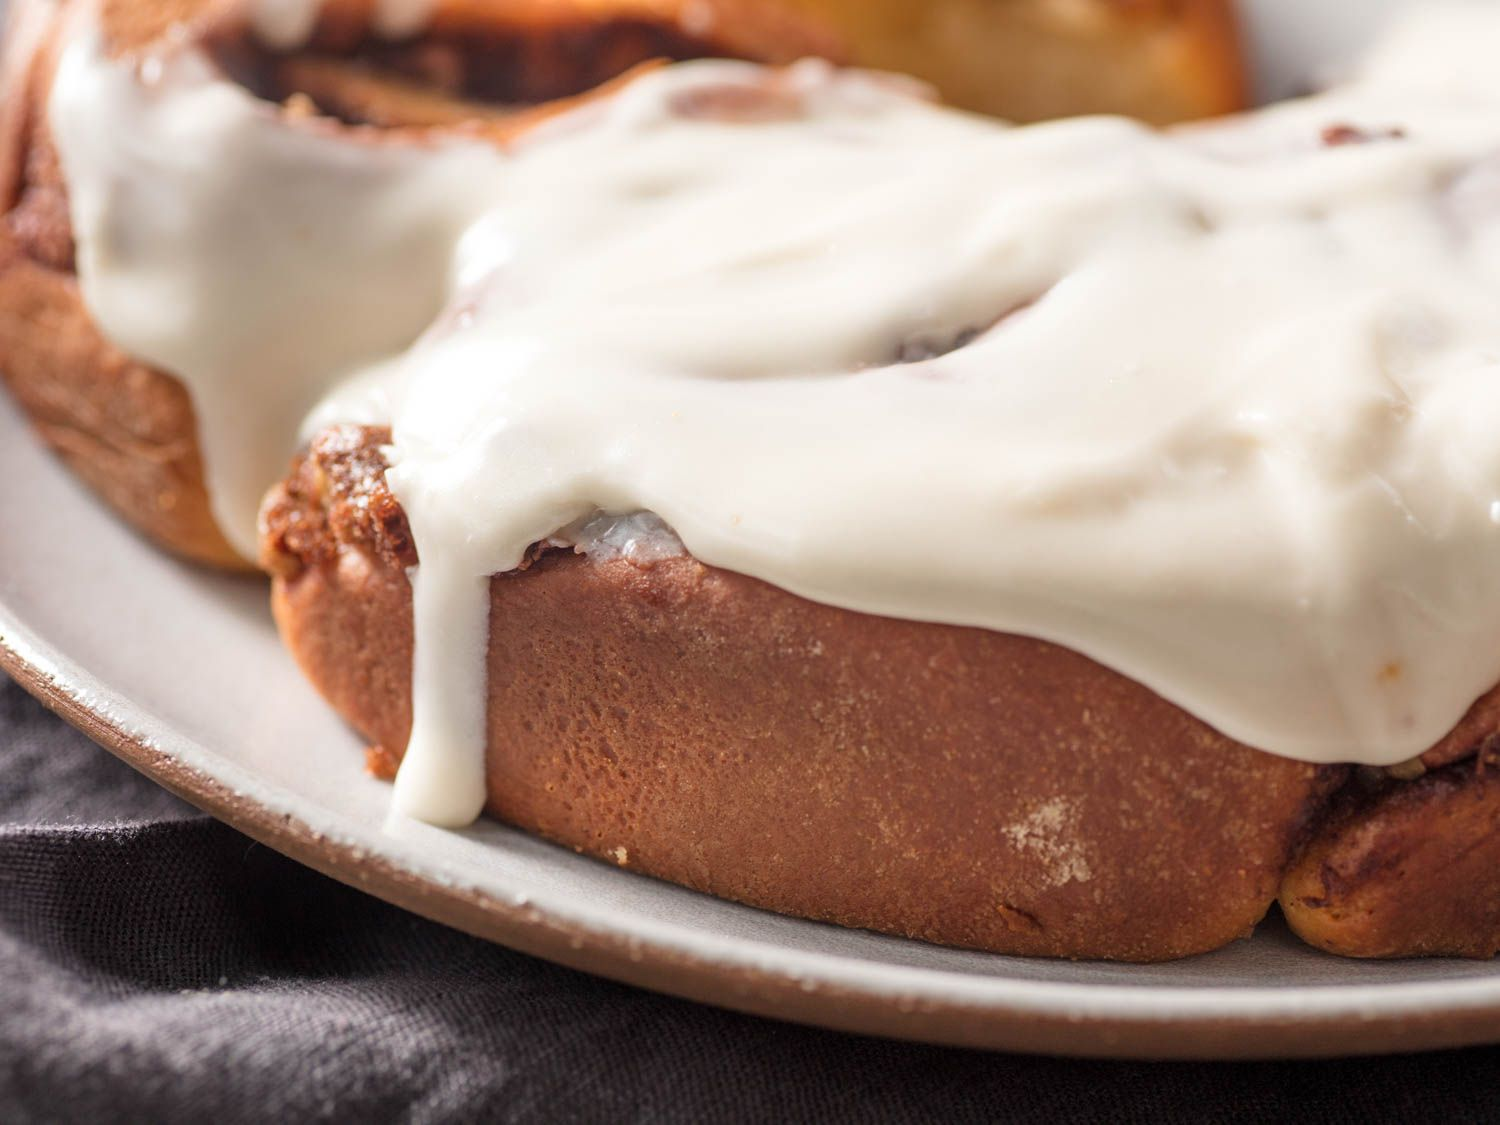 Cream cheese frosting dripping over the edge of freshly baked cinnamon rolls